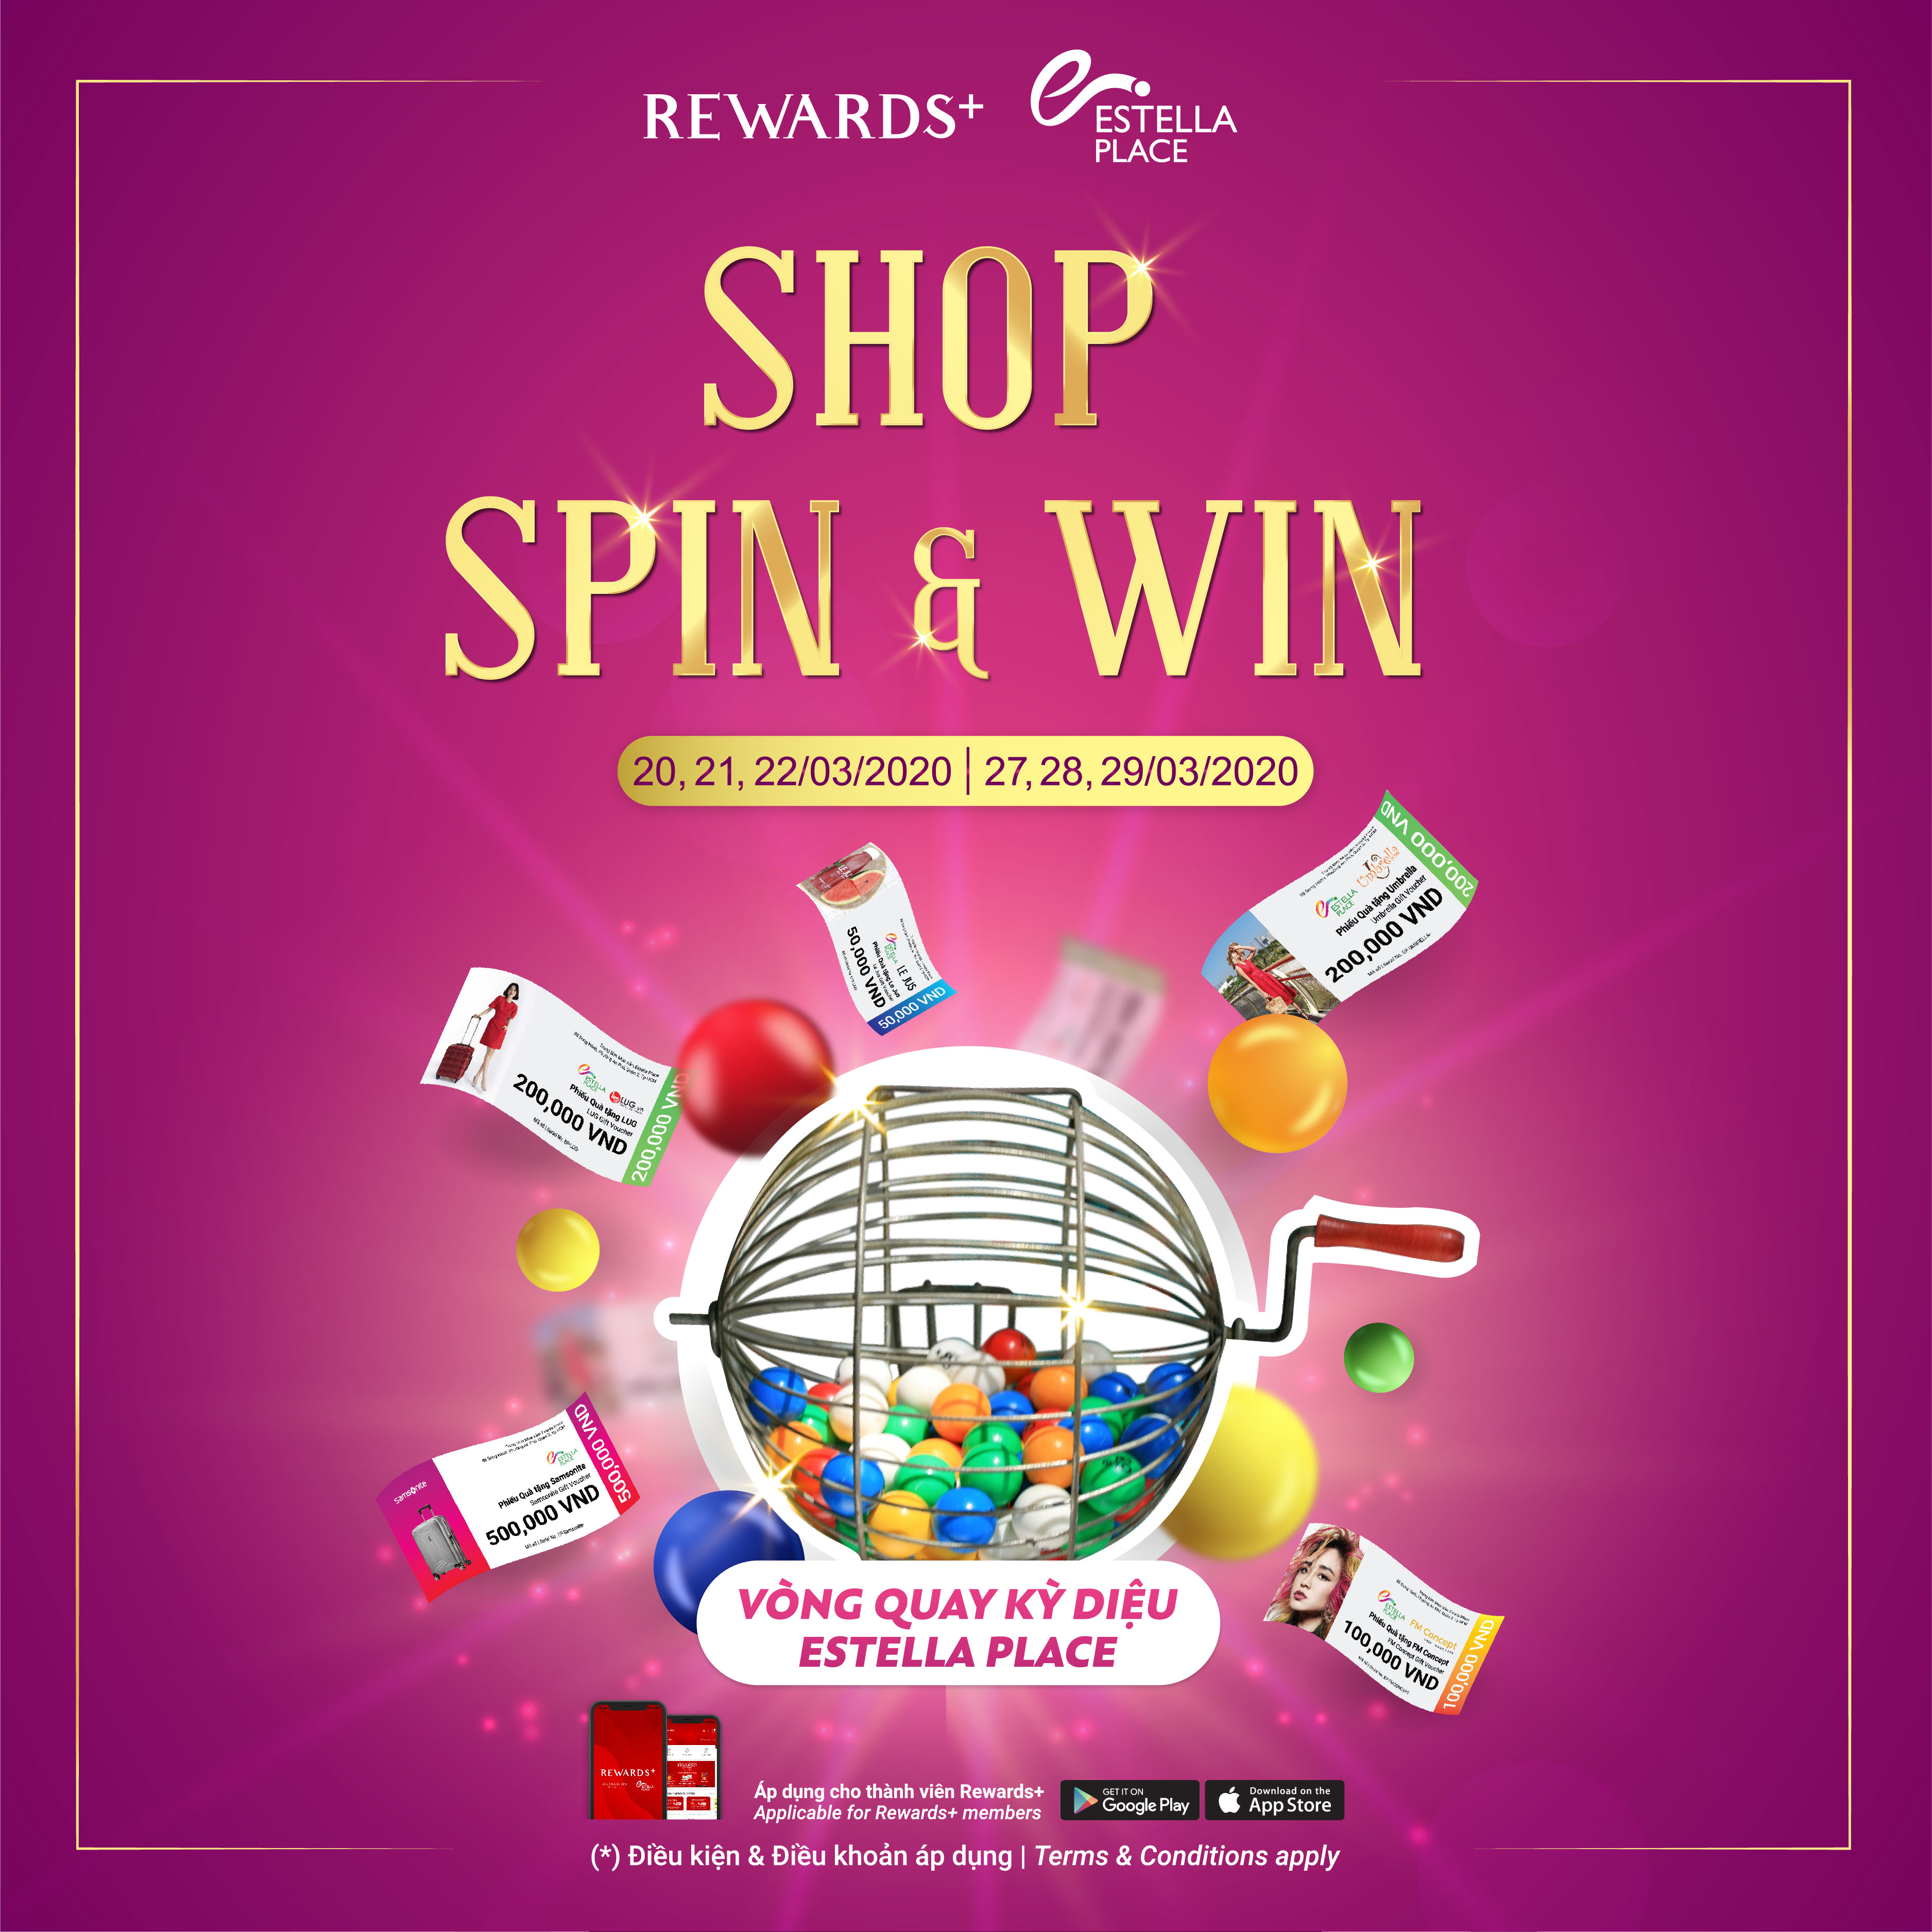 SHOP, SPIN & WIN AT ESTELLA PLACE